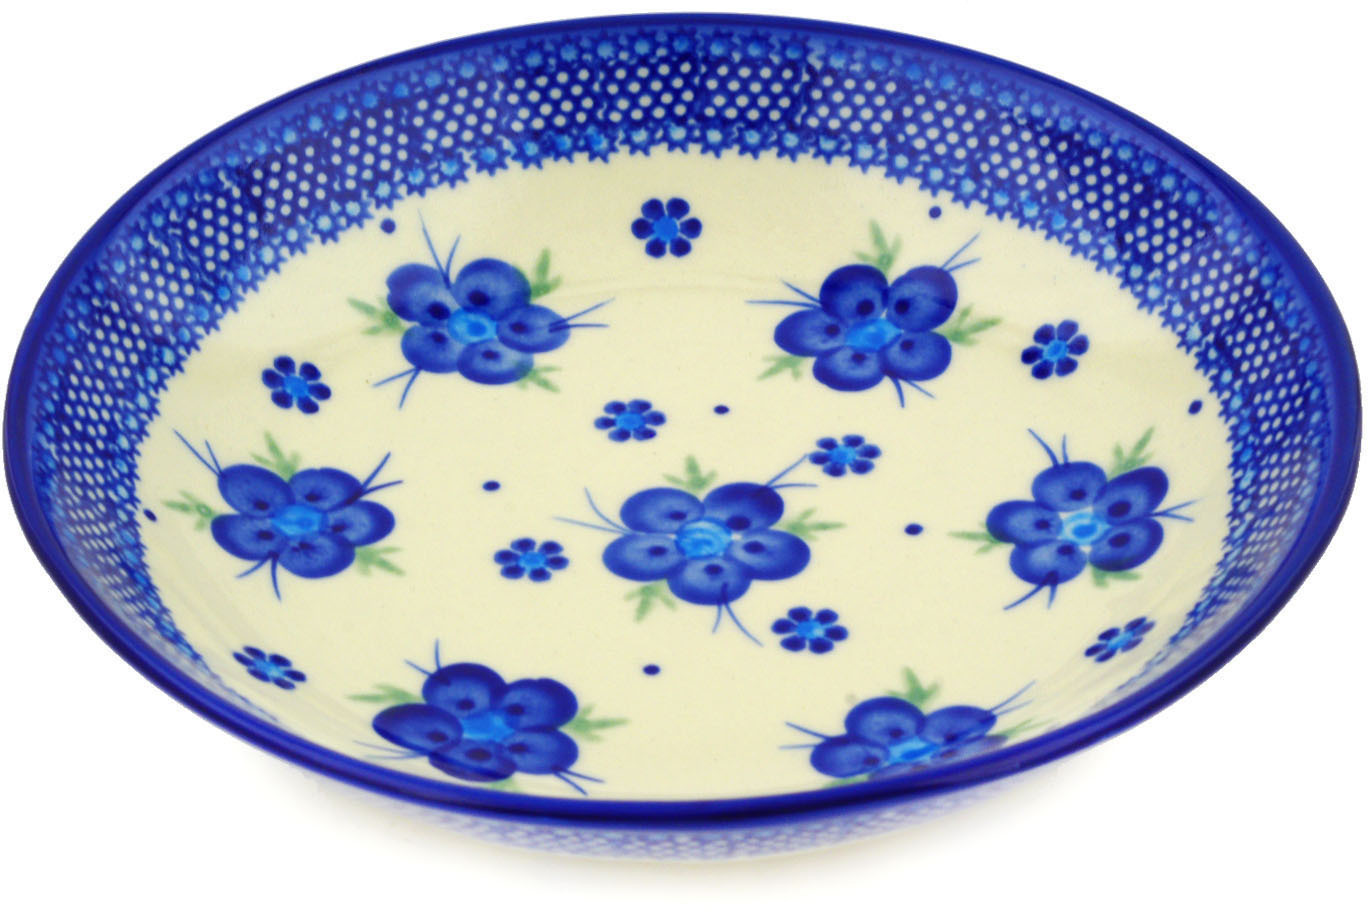 Polish Pottery 8�-inch Pasta Bowl (Bleu-belle Fleur Theme) Hand Painted in Boleslawiec, Poland + Certificate... by Ceramika Bona